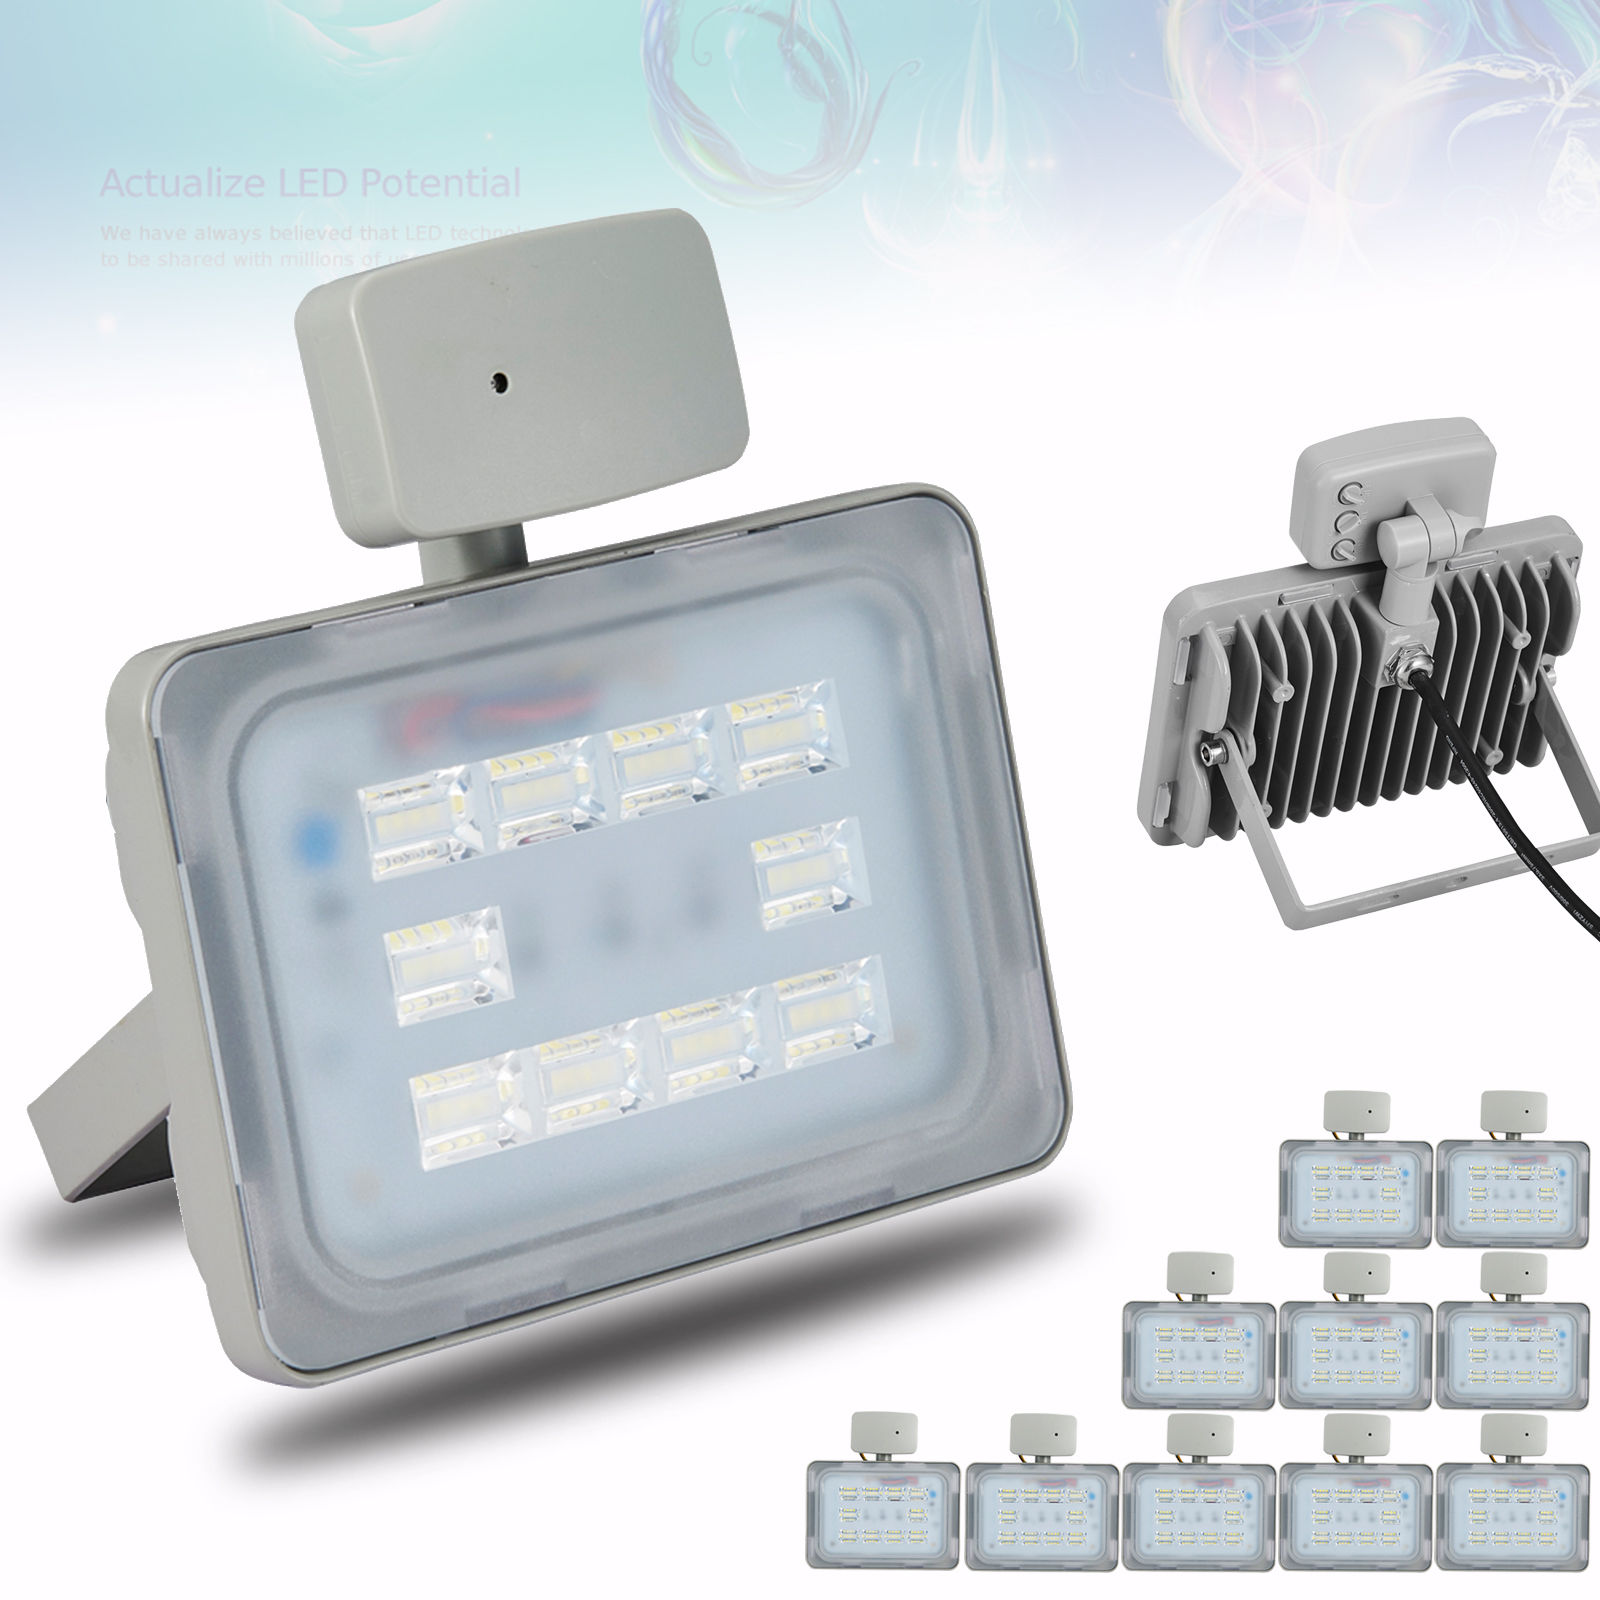 20X Viugreum 30W LED Floodlight Outdoor Garden Lamp Cool White, Microwave Sensor